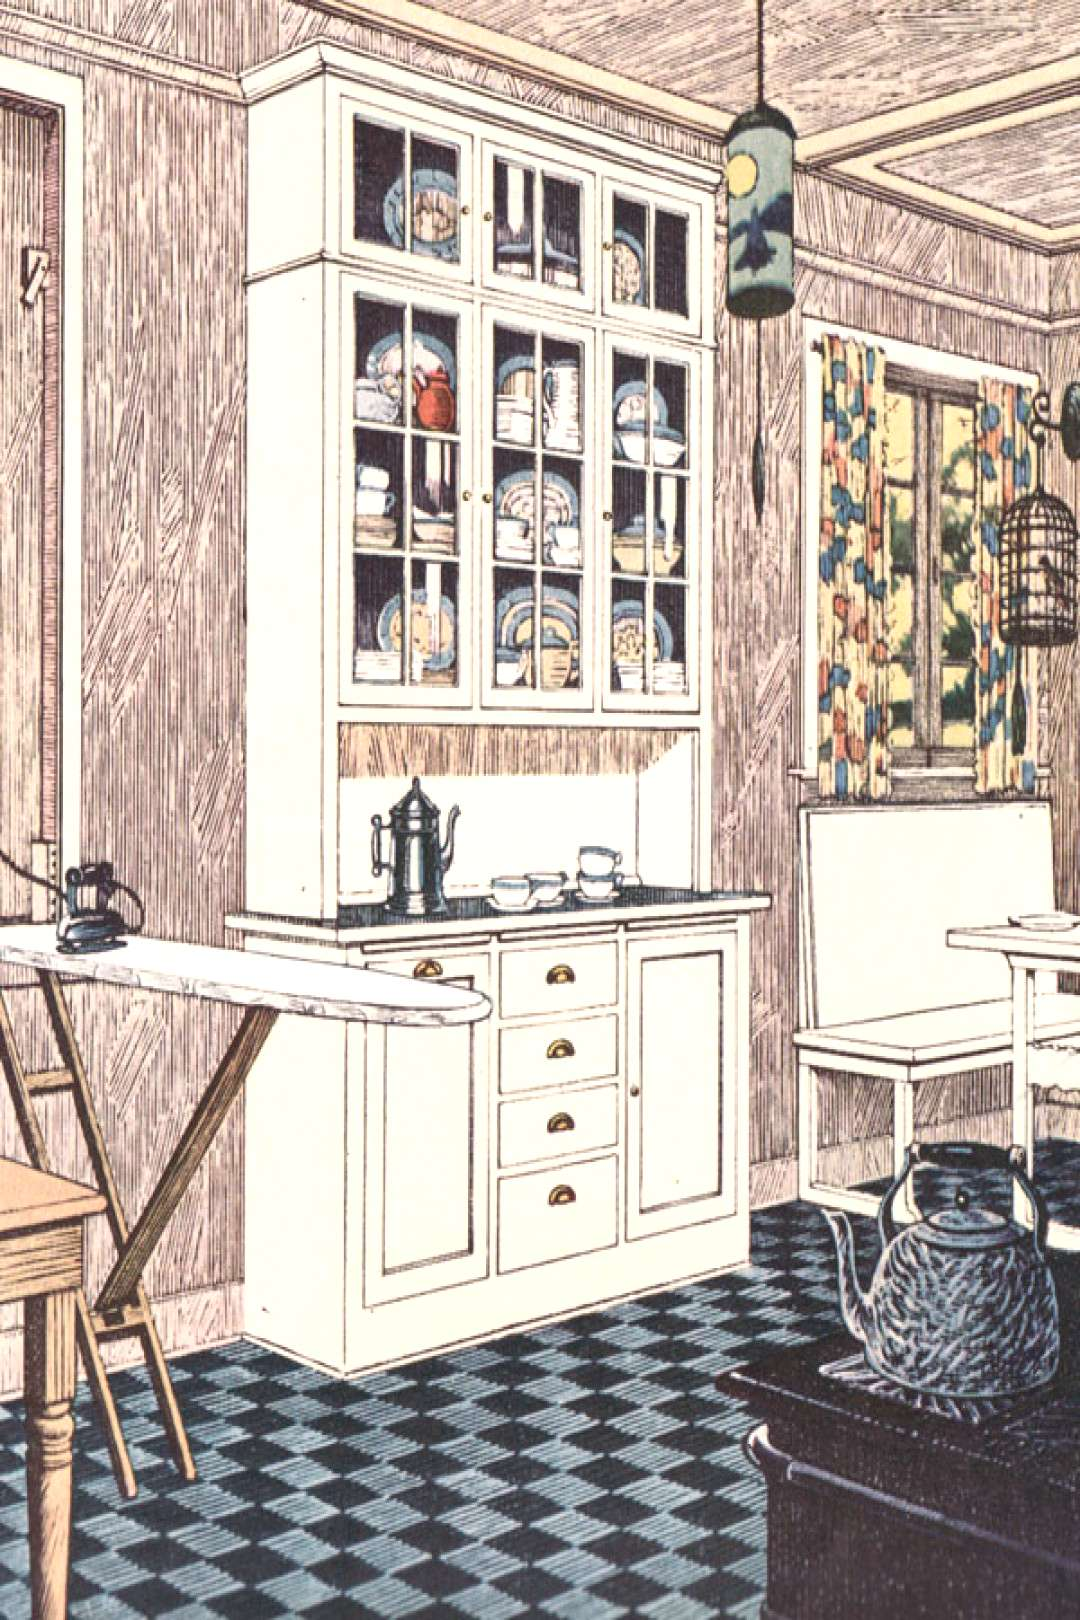 1920s Kitchen Gallery - Kitchen flooring, cabinetry, nooks, and plumbing - Vinta...#1920s